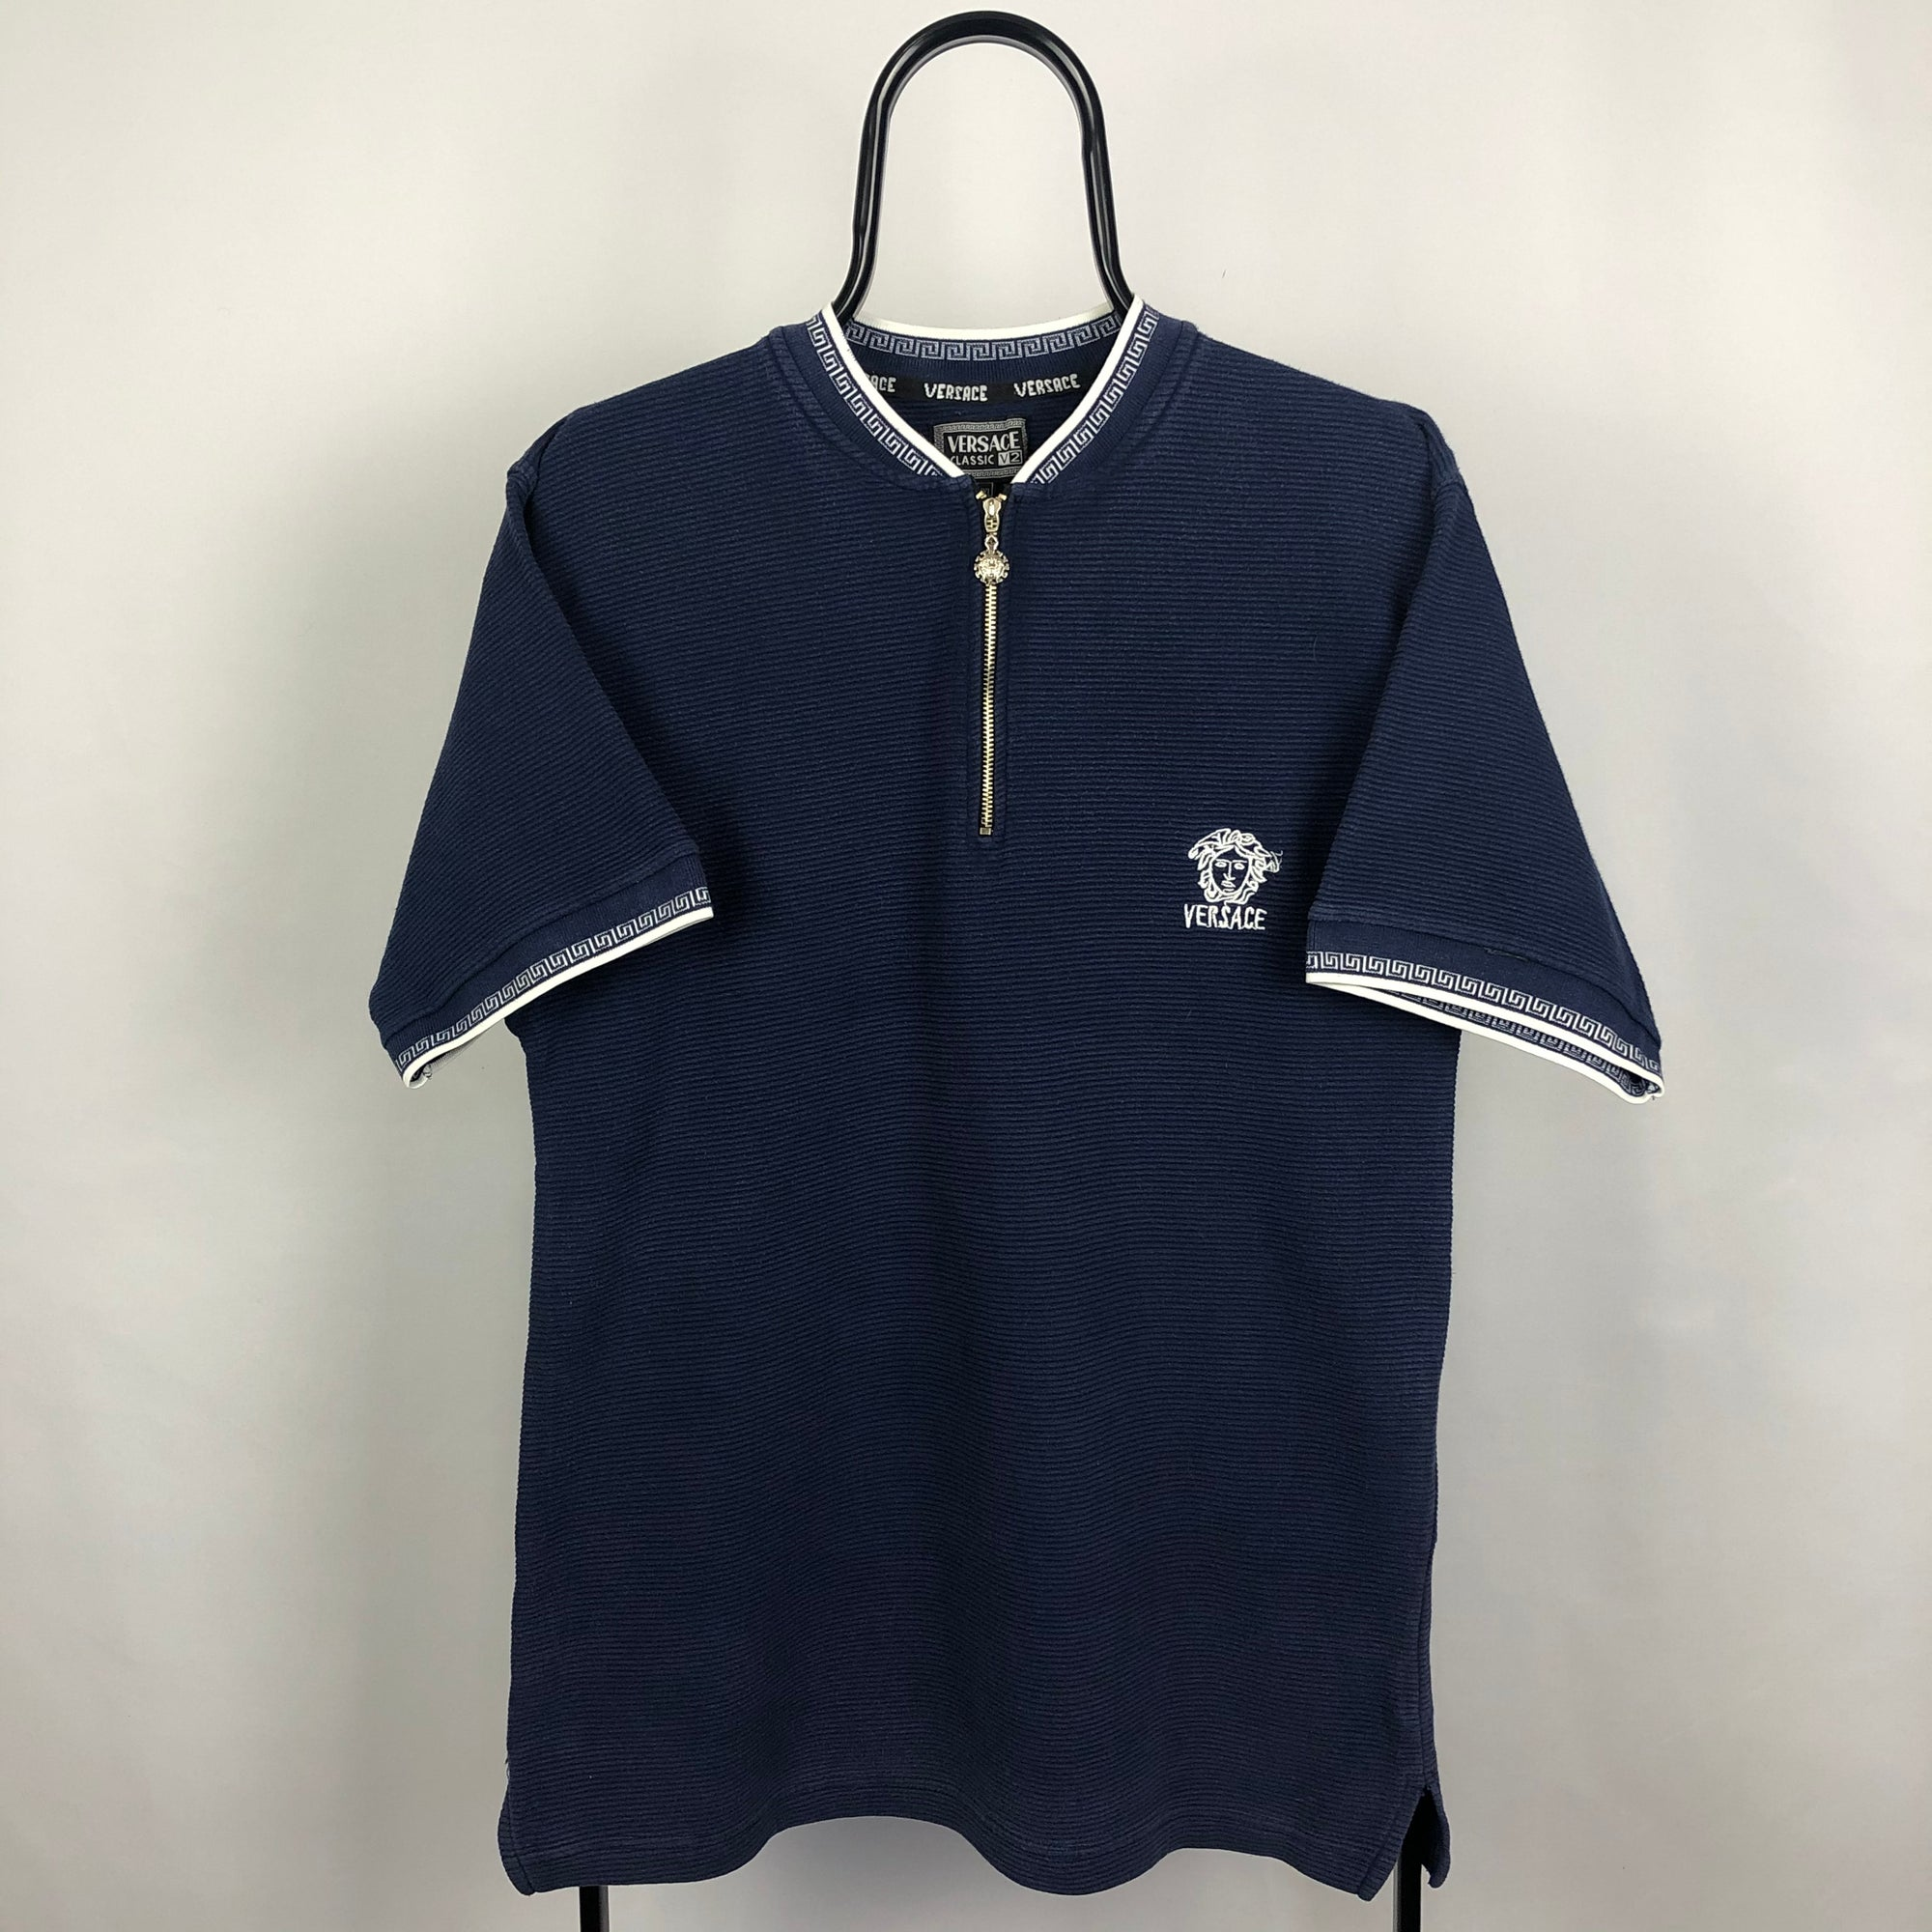 Versace zip Polo Shirt - Men's Medium/Women's XL